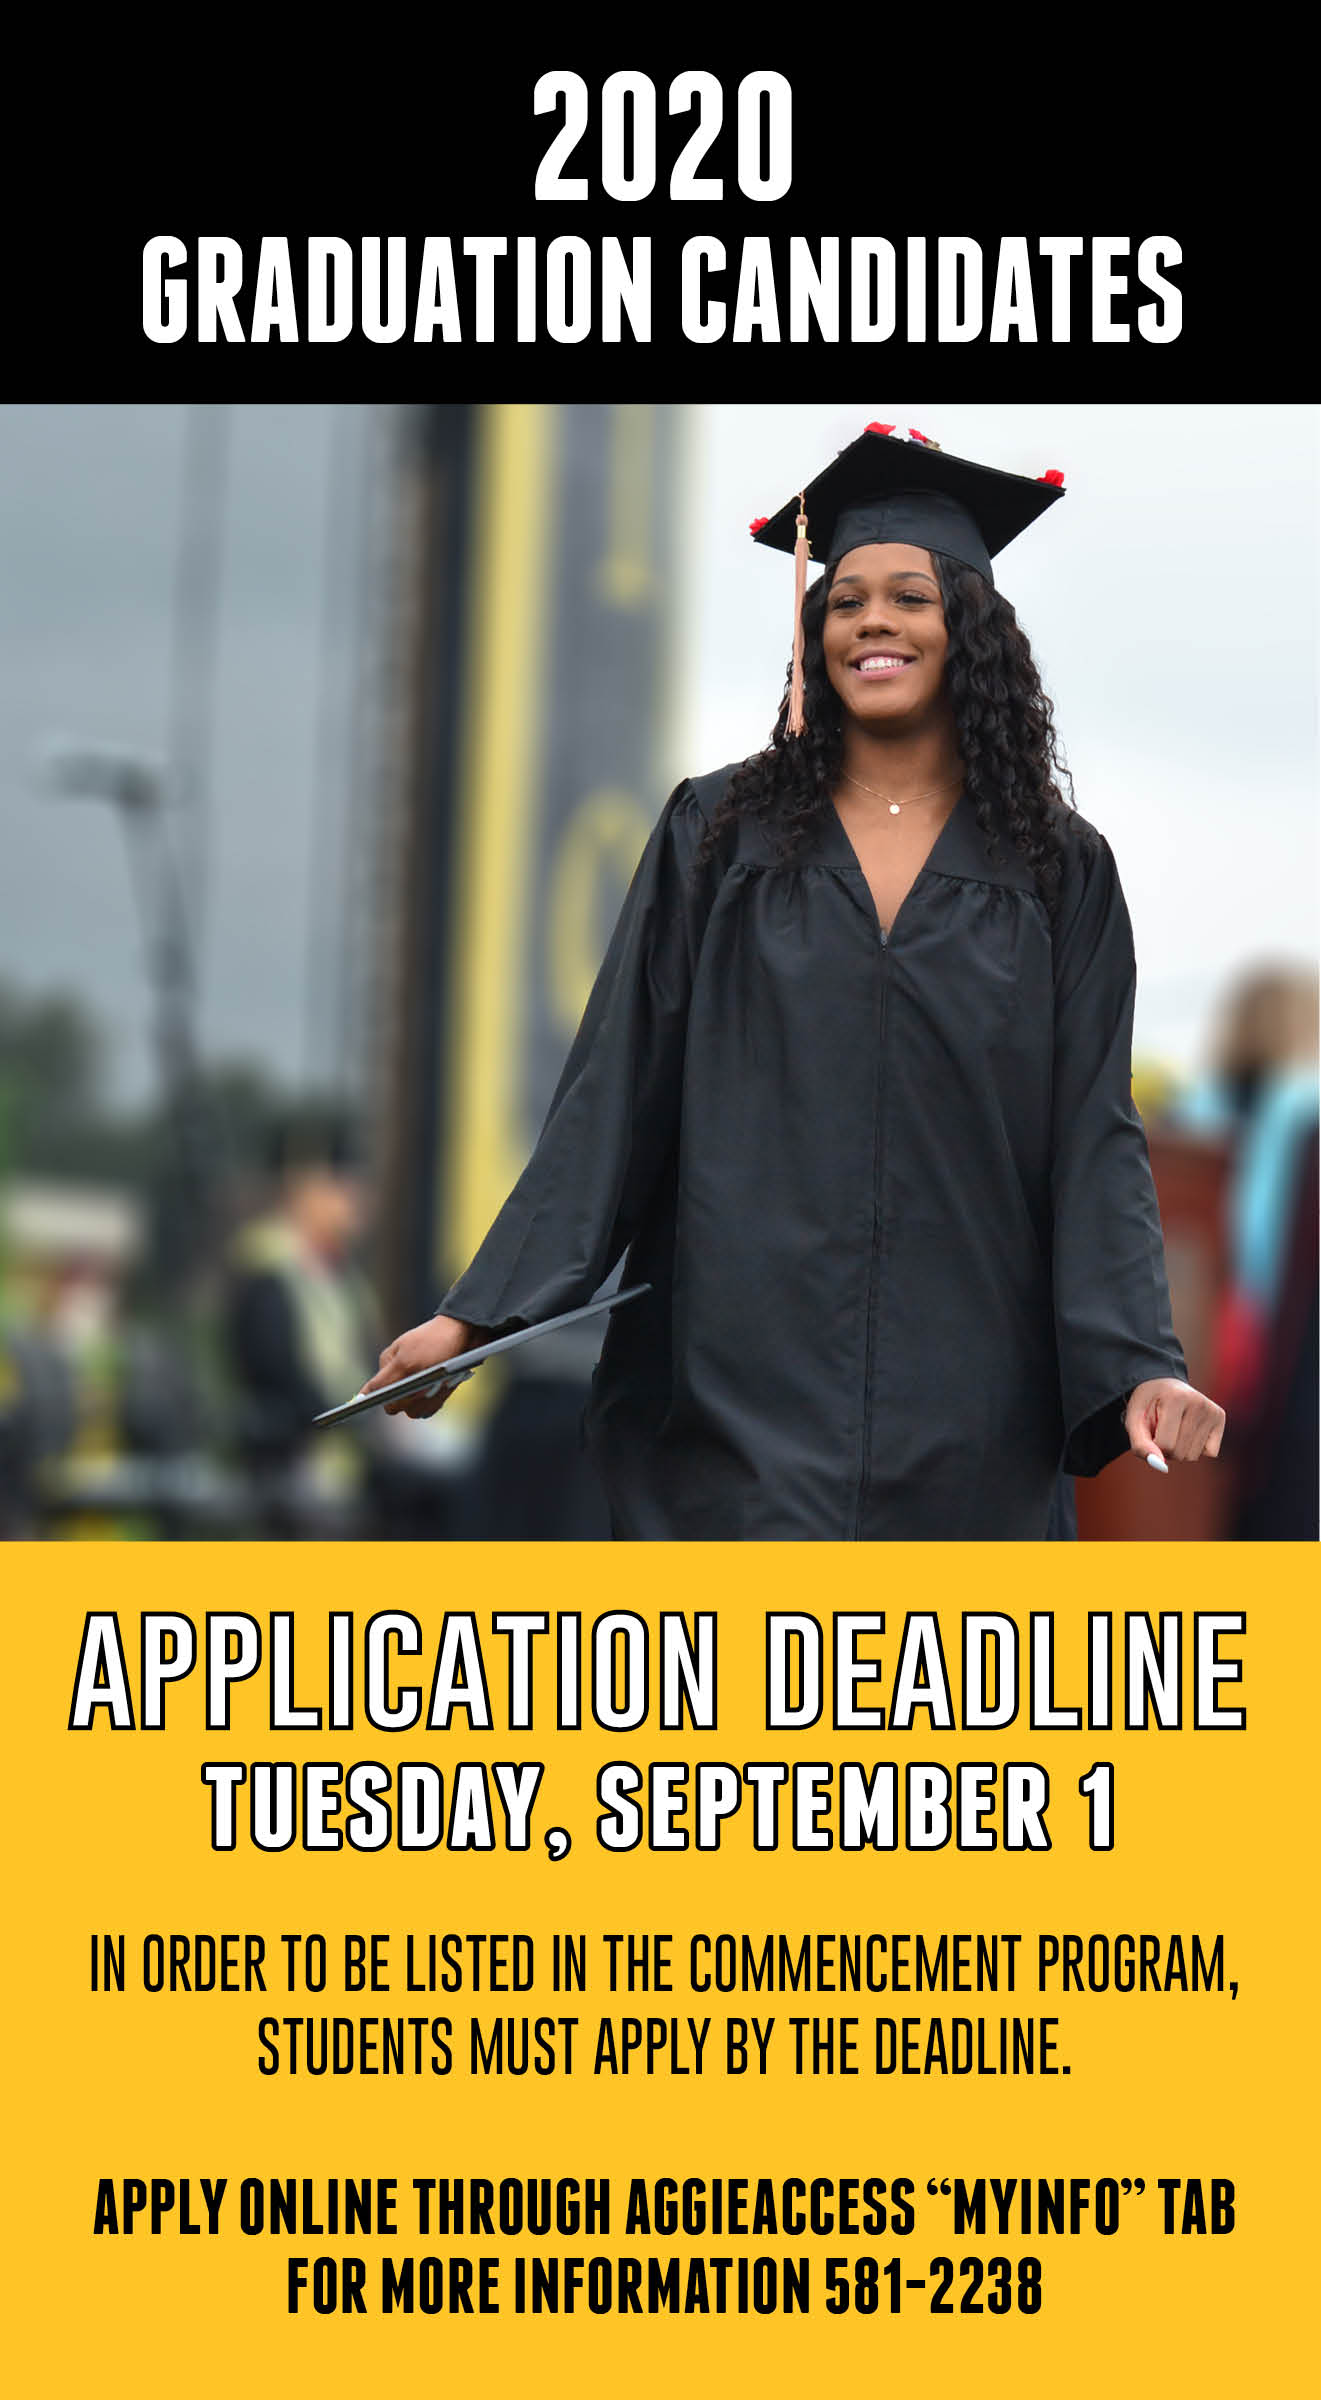 "2020 Graduation Candidates Application Deadline Tuesday, September 1 In order to be listed in the Commencement program,students must apply by the deadline. Apply online through AggieAggie ""MyINFO"" tab For more information 581-2238"